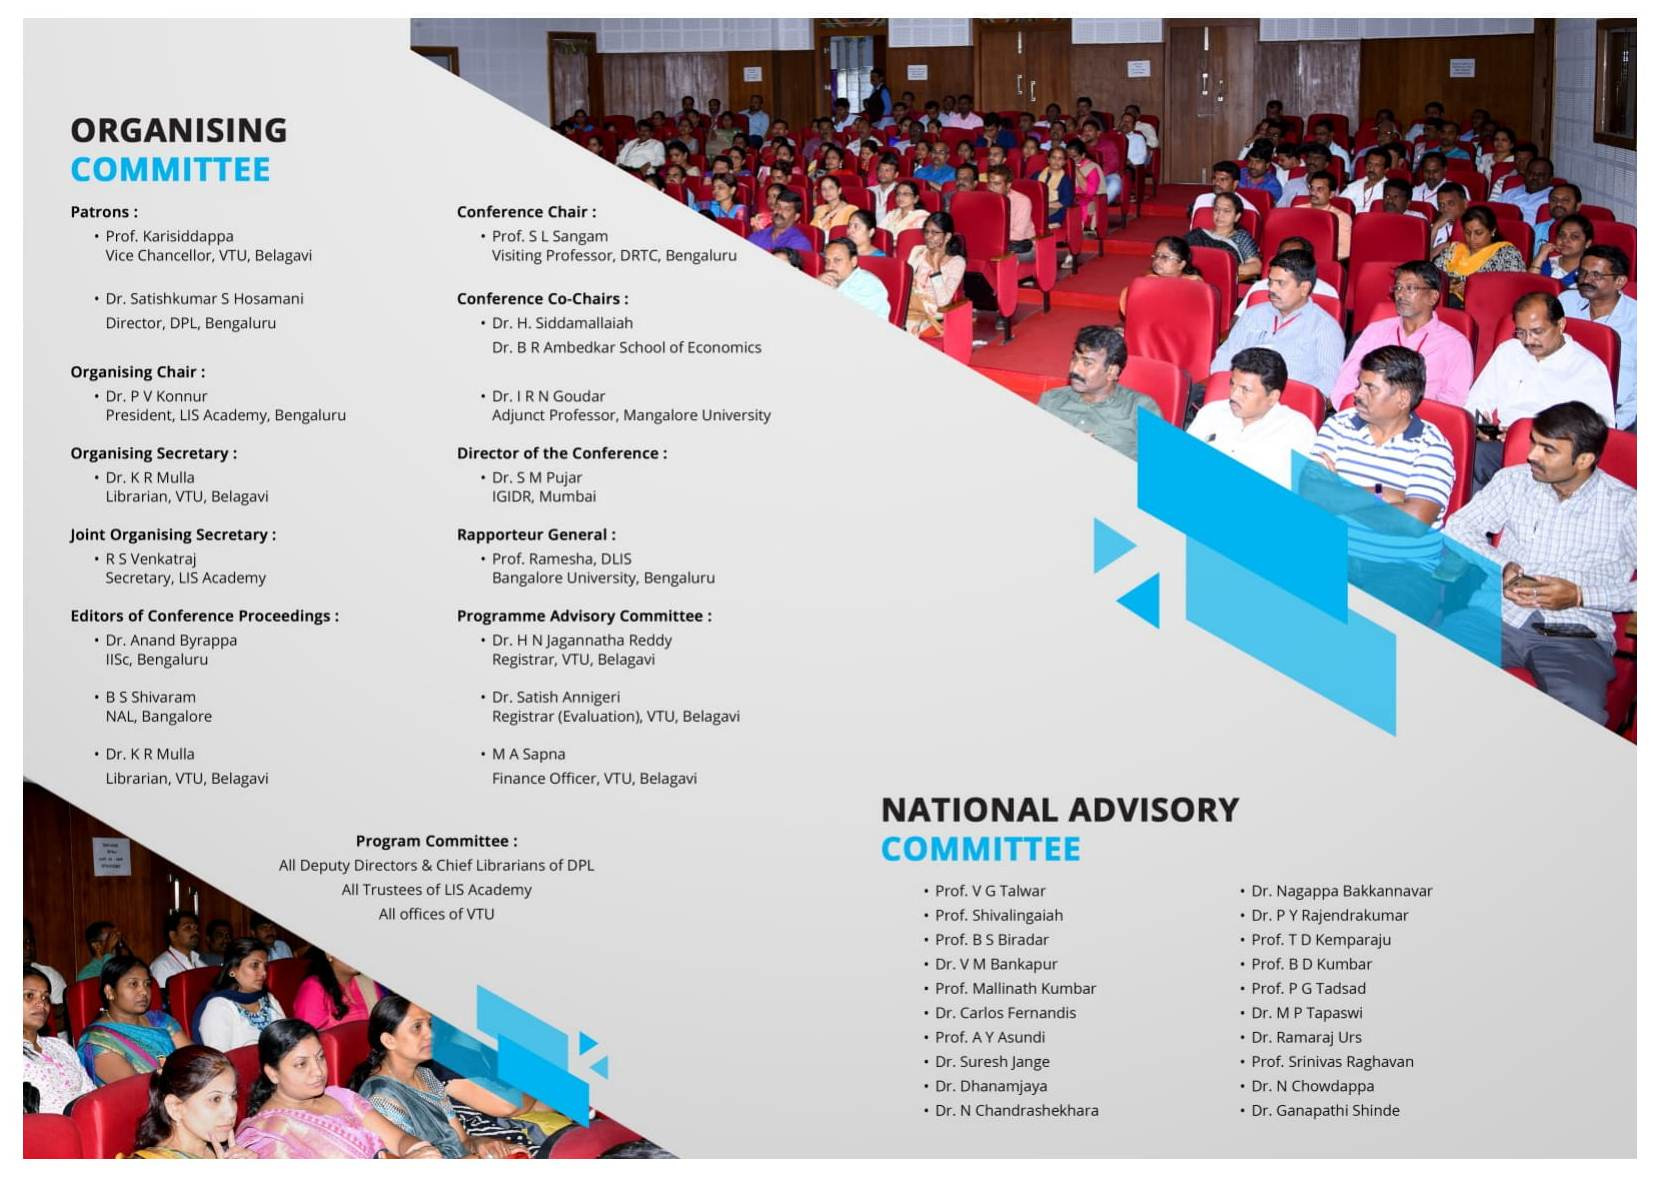 2nd LIS Academy Conference On 'Innovations In Libraries' On 7-9